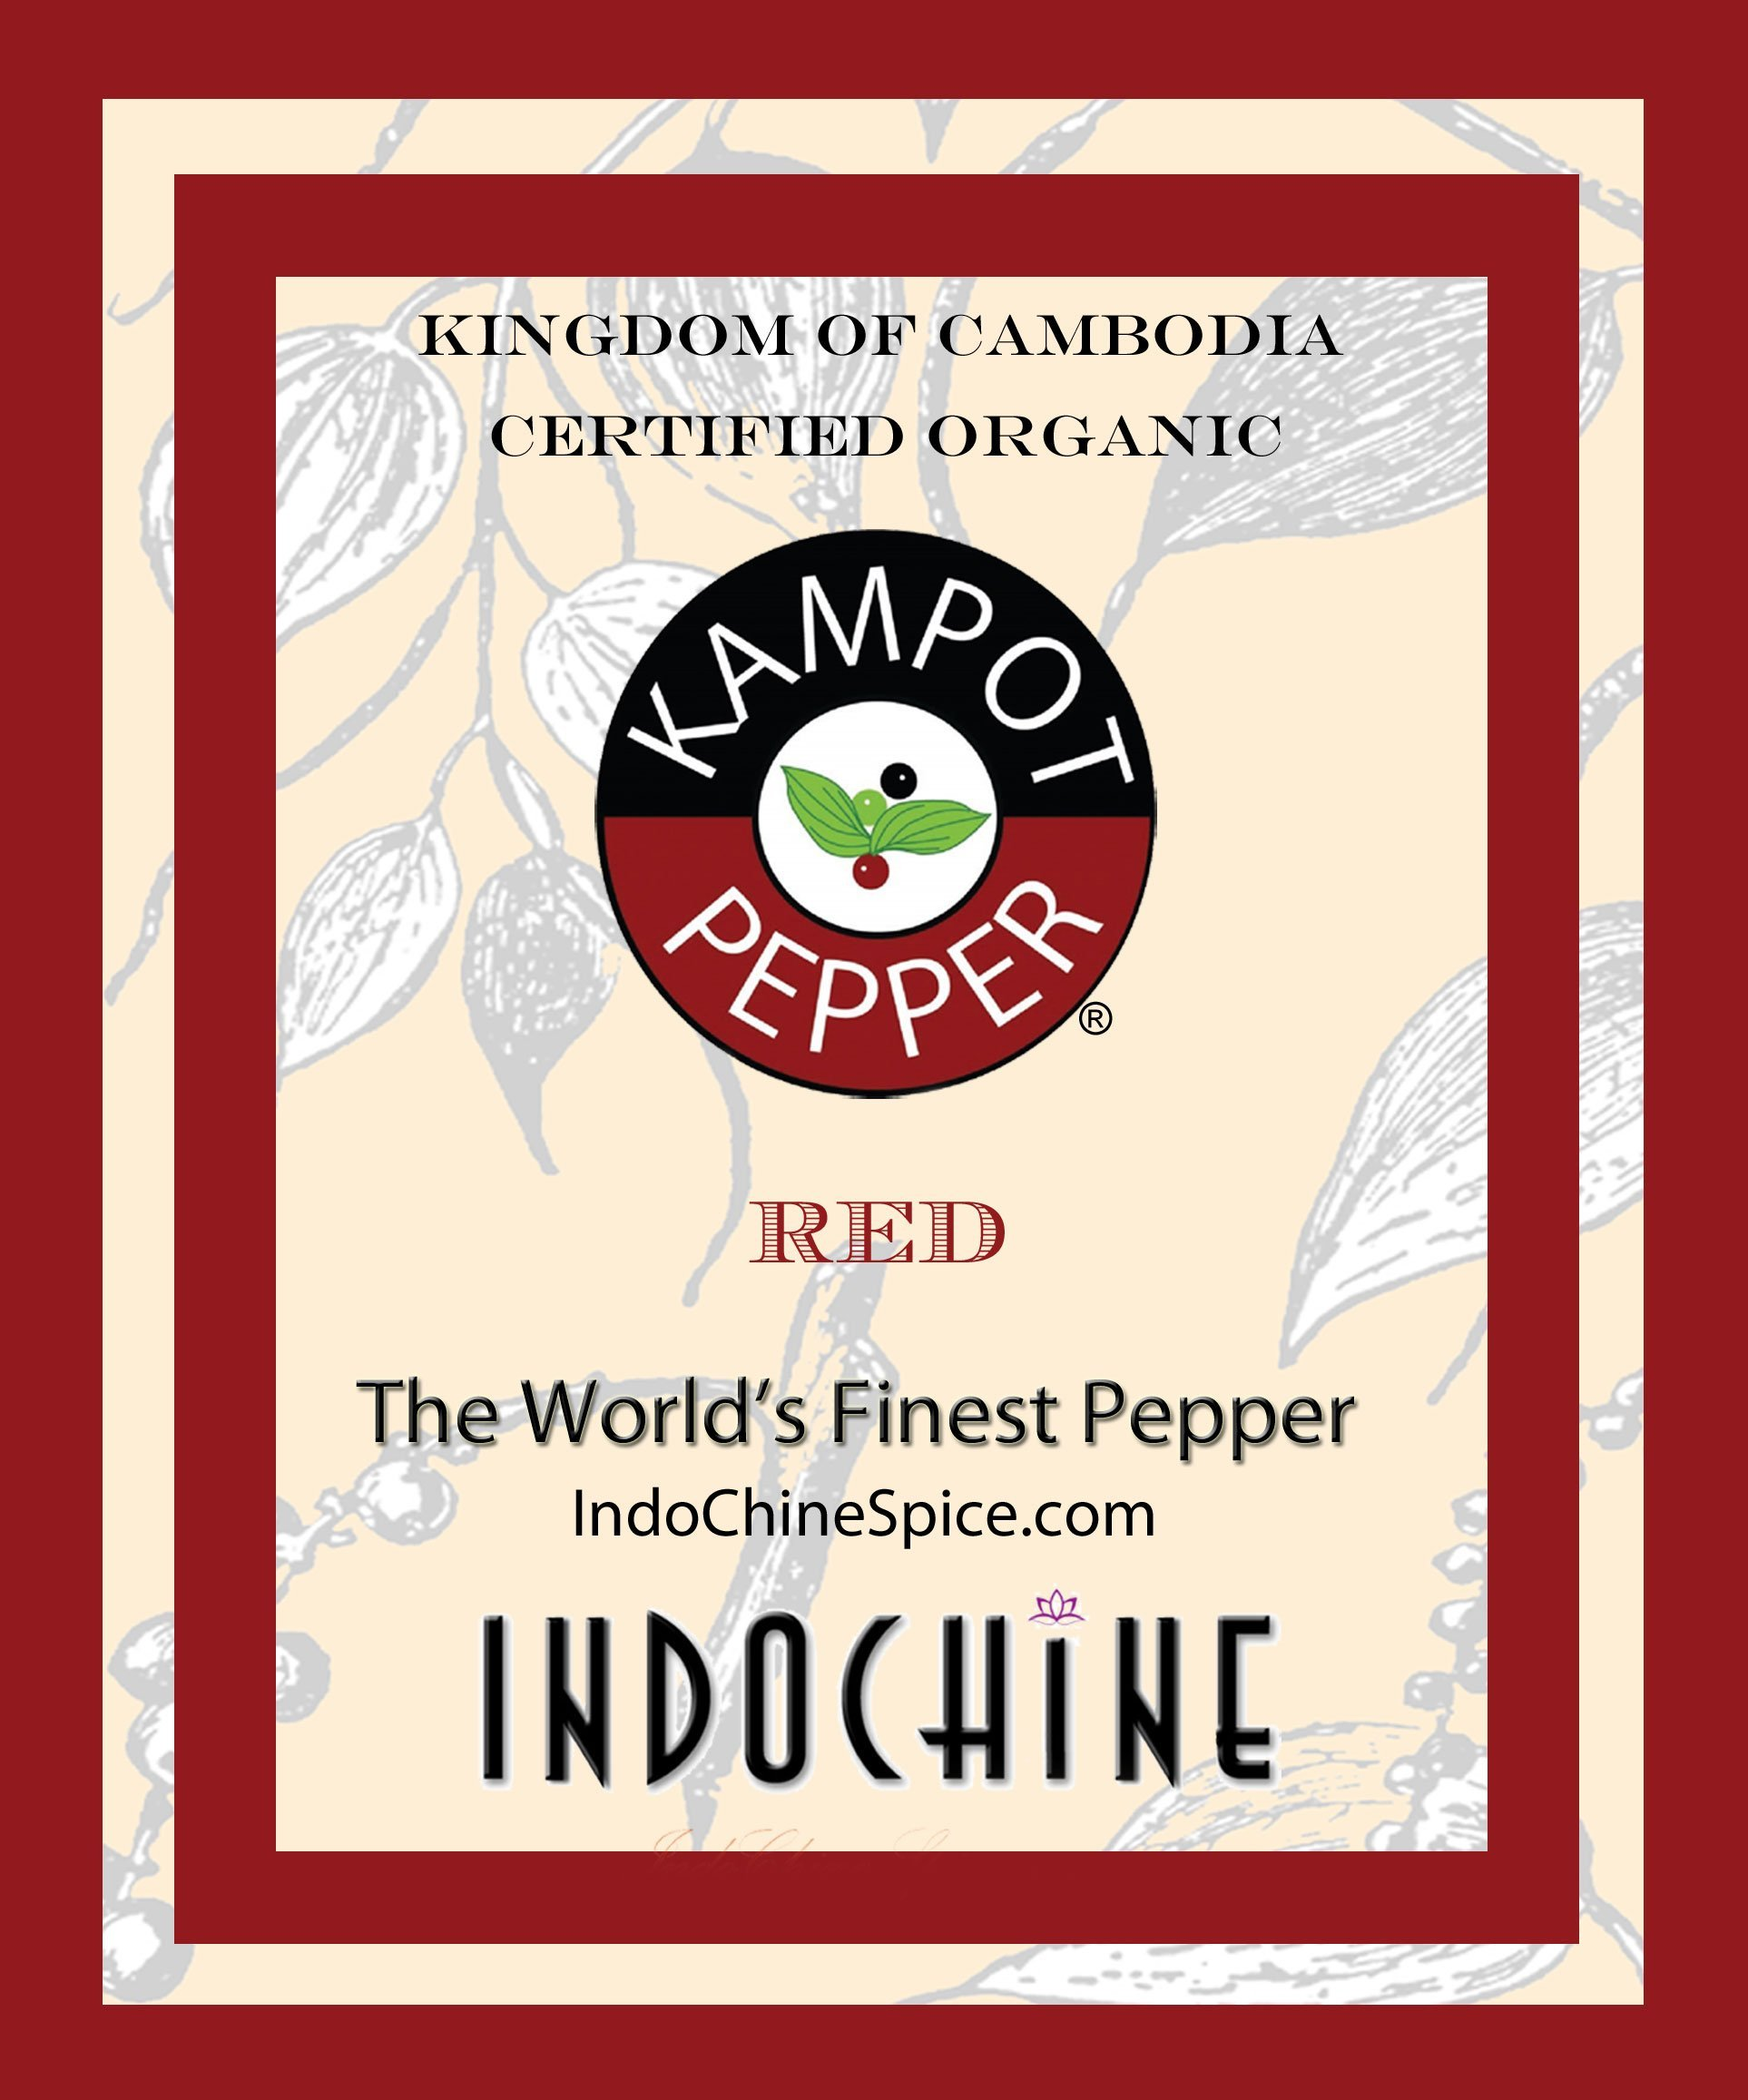 Amazon.com : Organic Kampot Pepper - Rare Cambodian Peppercorns ...